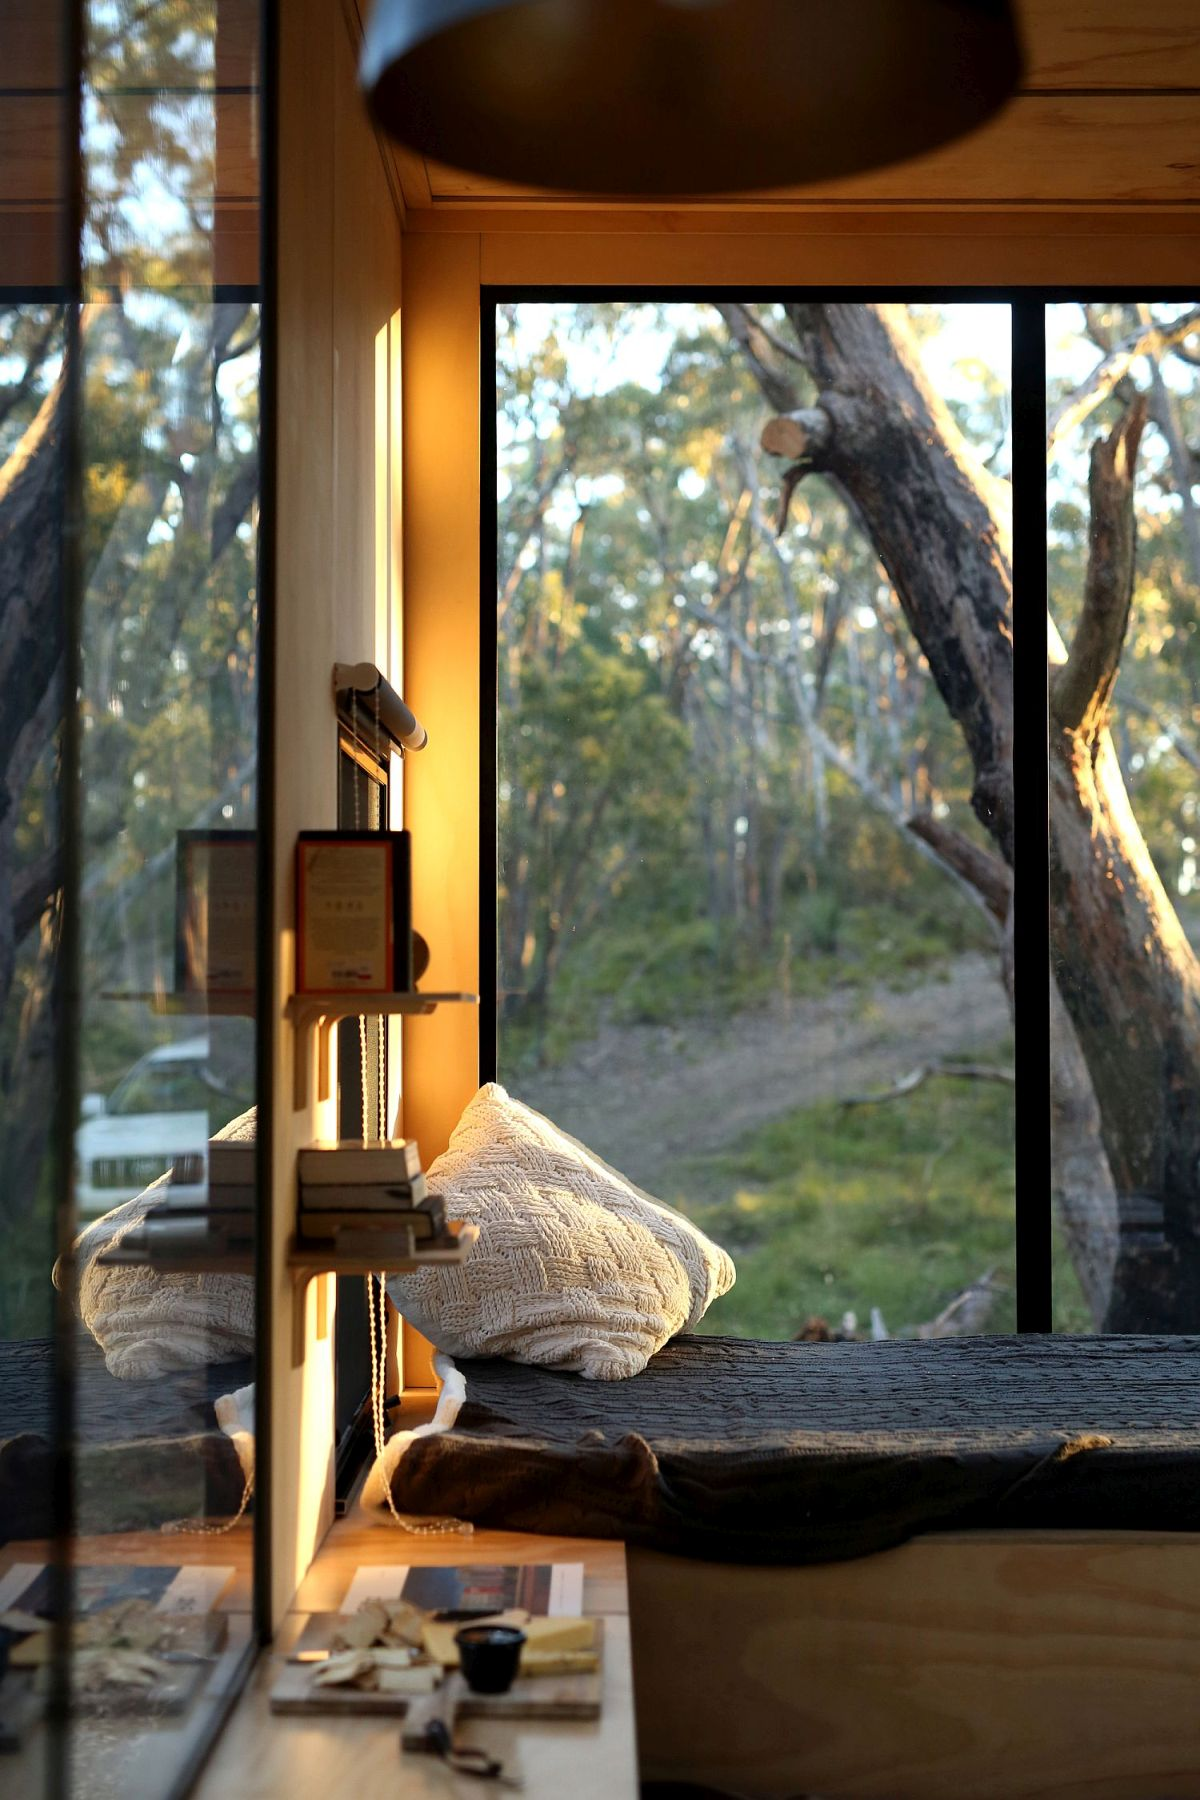 The sleeping space byt the window allows enjoying the views anytime, there are shelves around